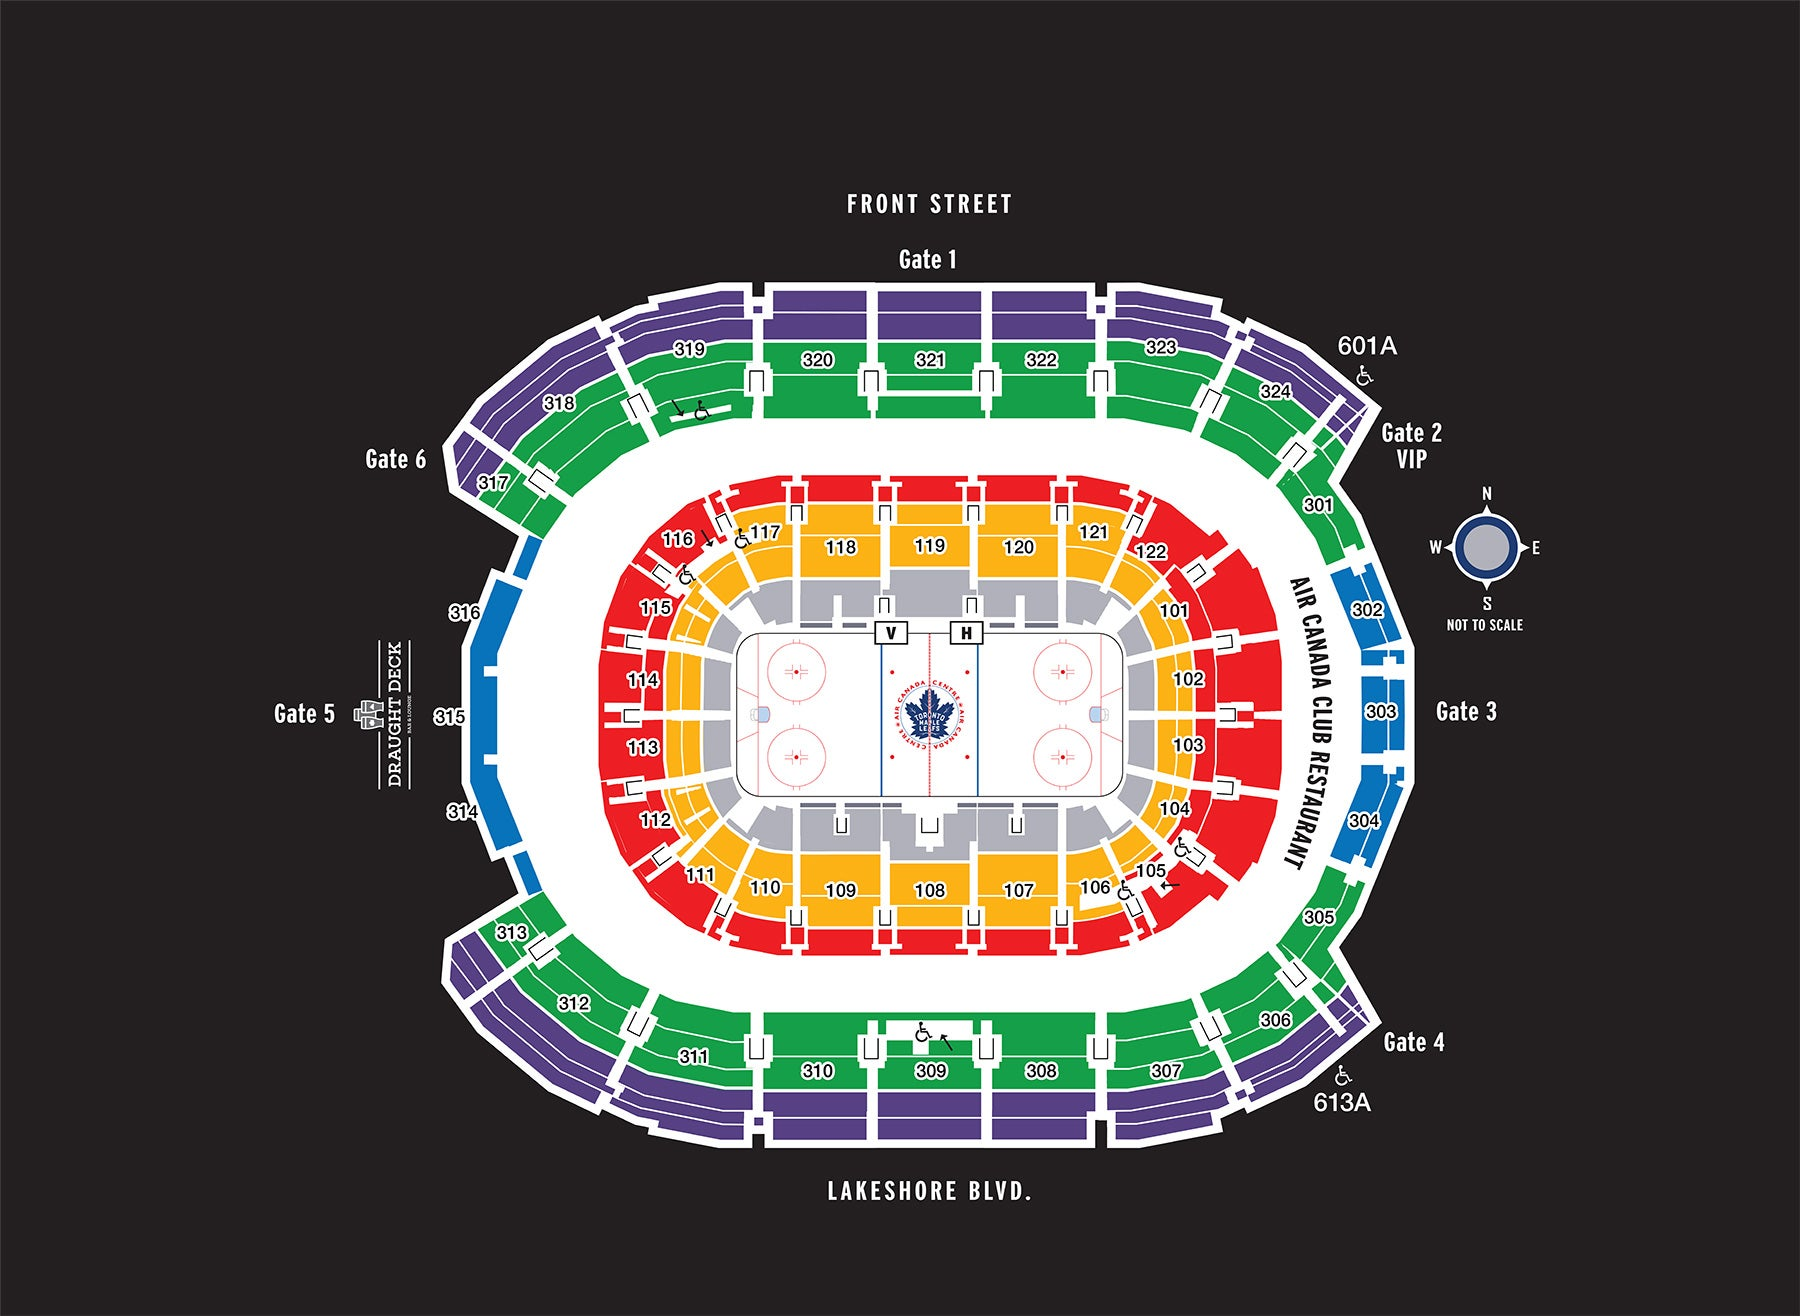 Toronto Maple Leafs 2017-18 Seating Map.jpg